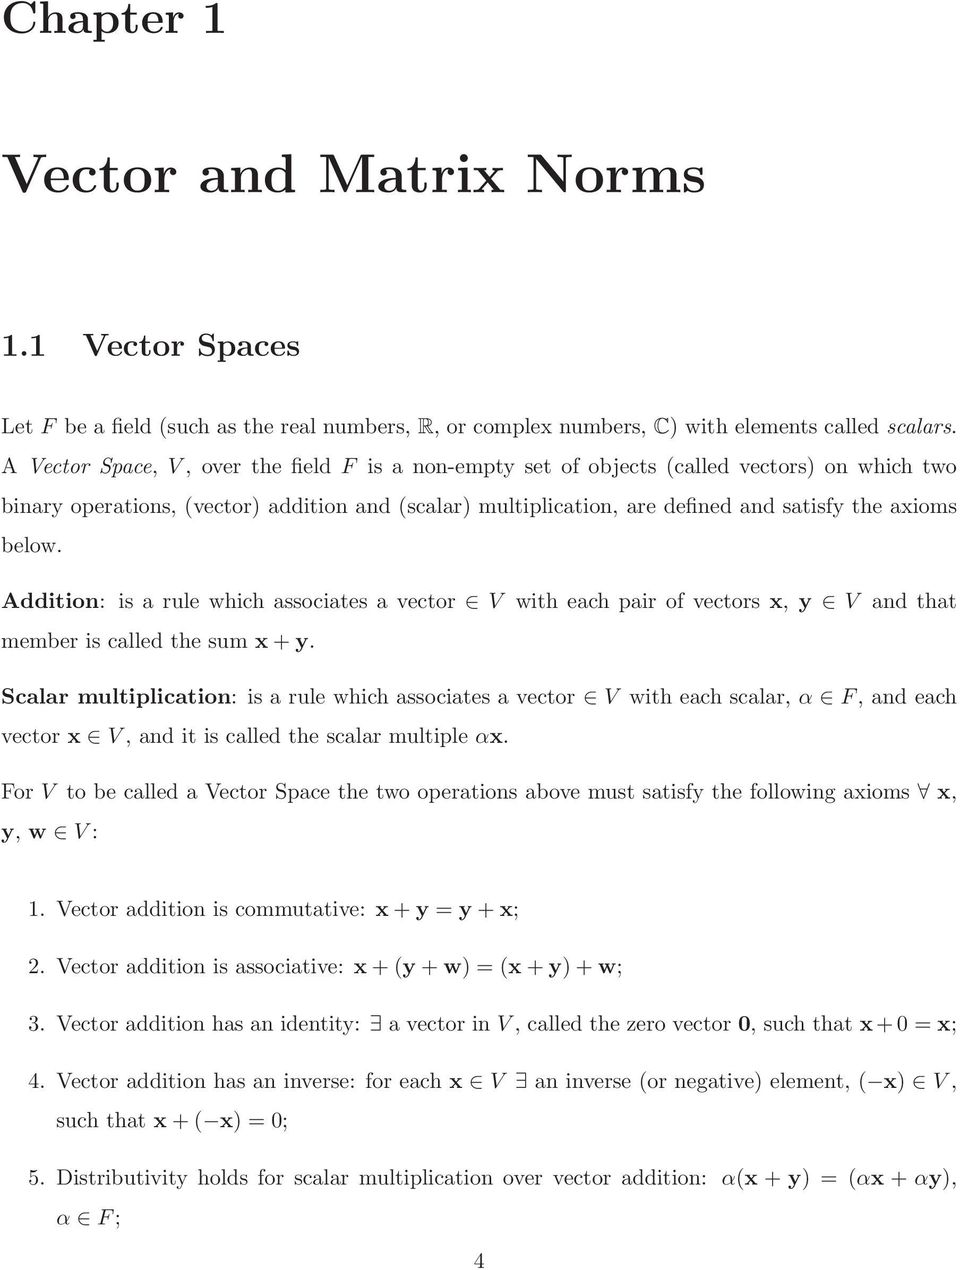 a vector V with each pair of vectors x, y V and that member is called the sum x + y Scalar multiplication: is a rule which associates a vector V with each scalar, α F, and each vector x V, and it is